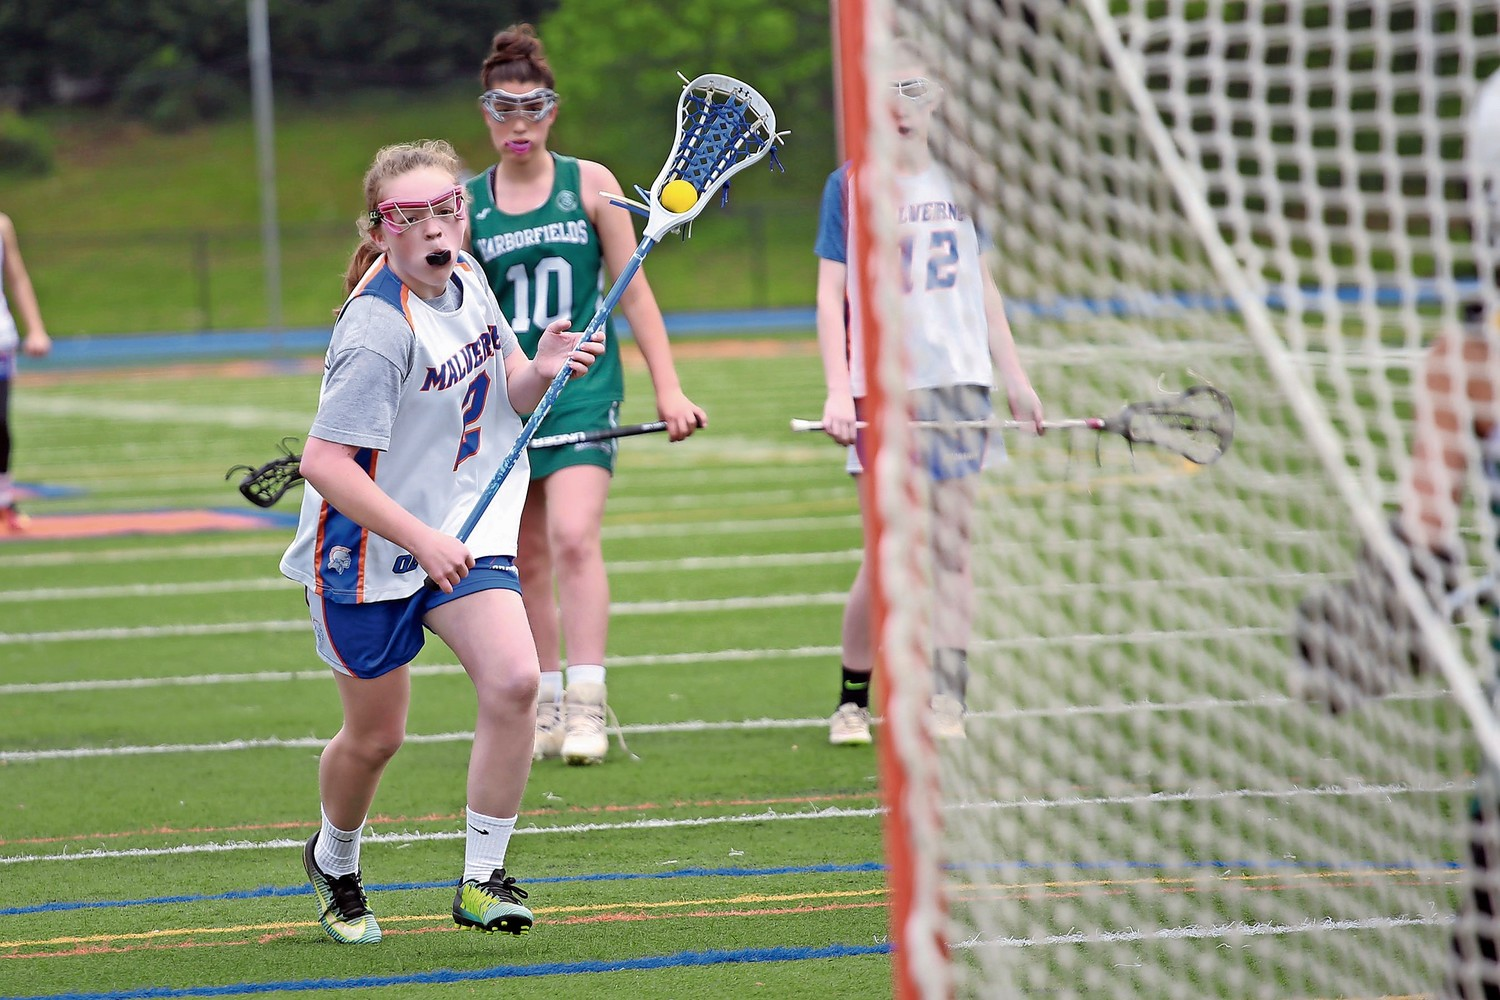 Ella Lapham had her sights set on scoring a goal.